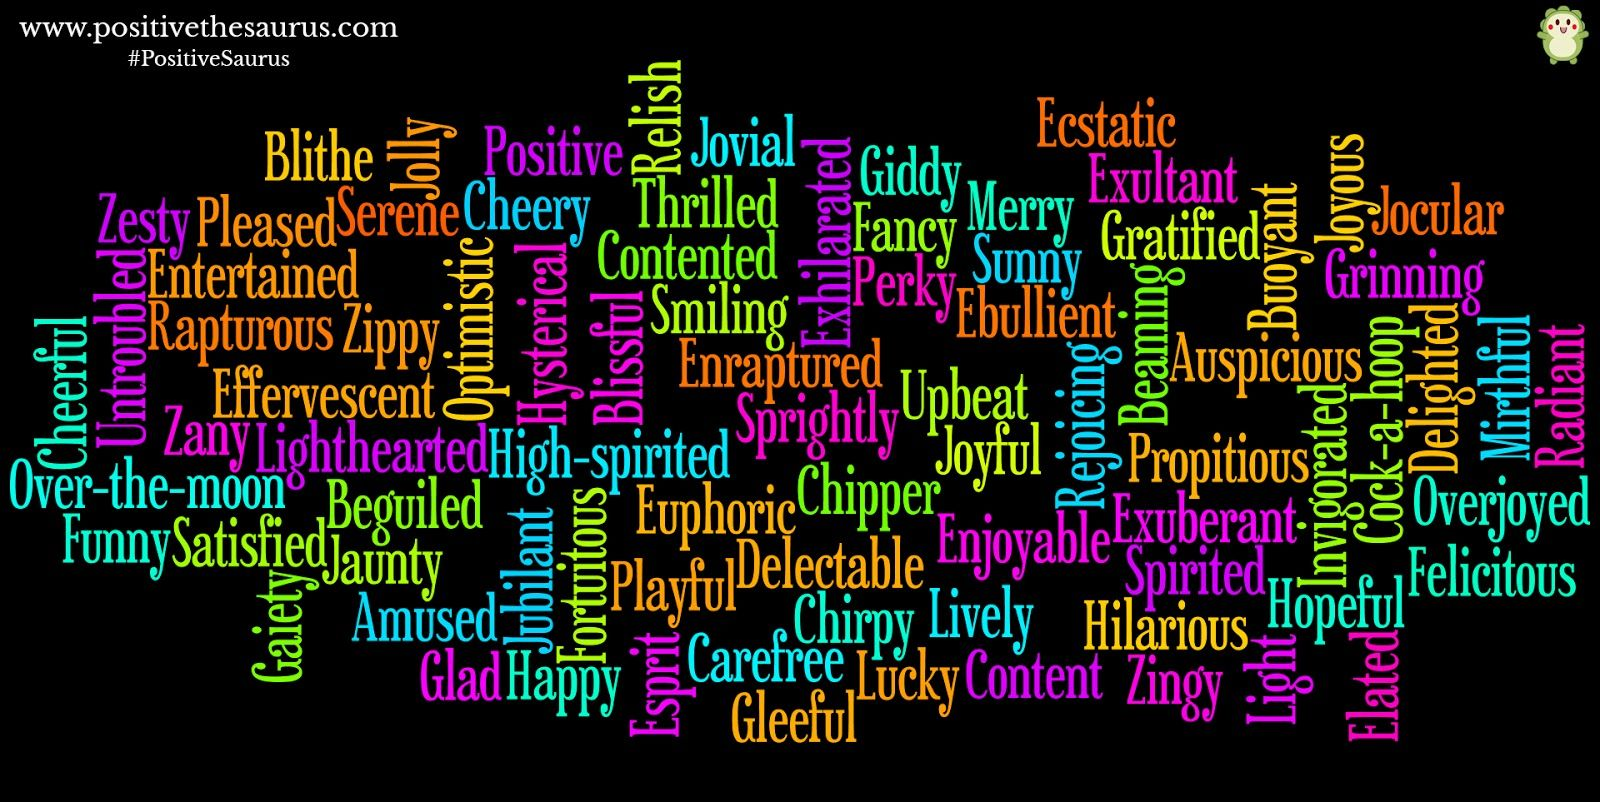 Positive words to describe happiness http://buff.ly/1yrvuCb ...